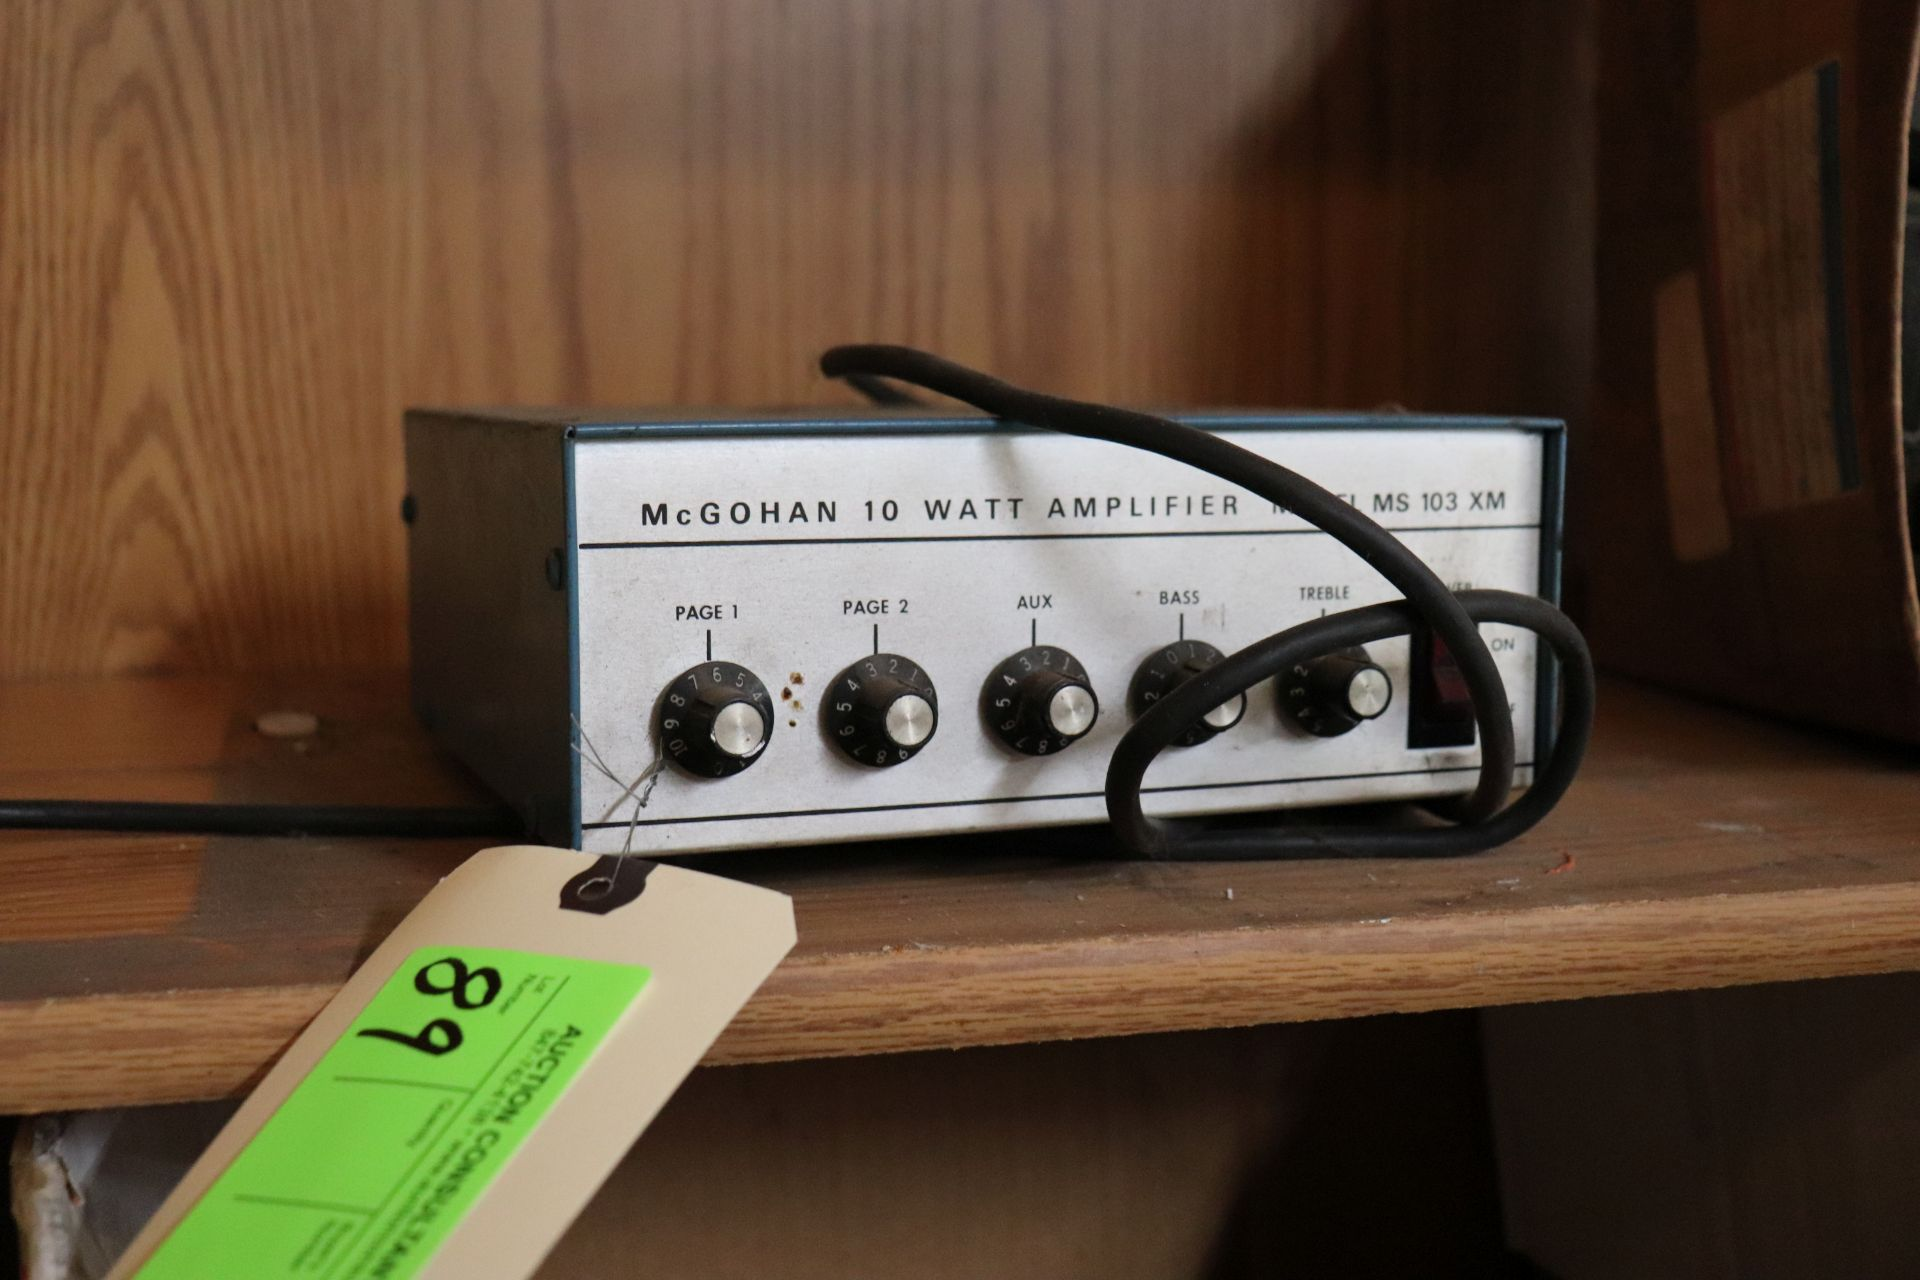 McGohan 10-watt amplifier, model MS103XM